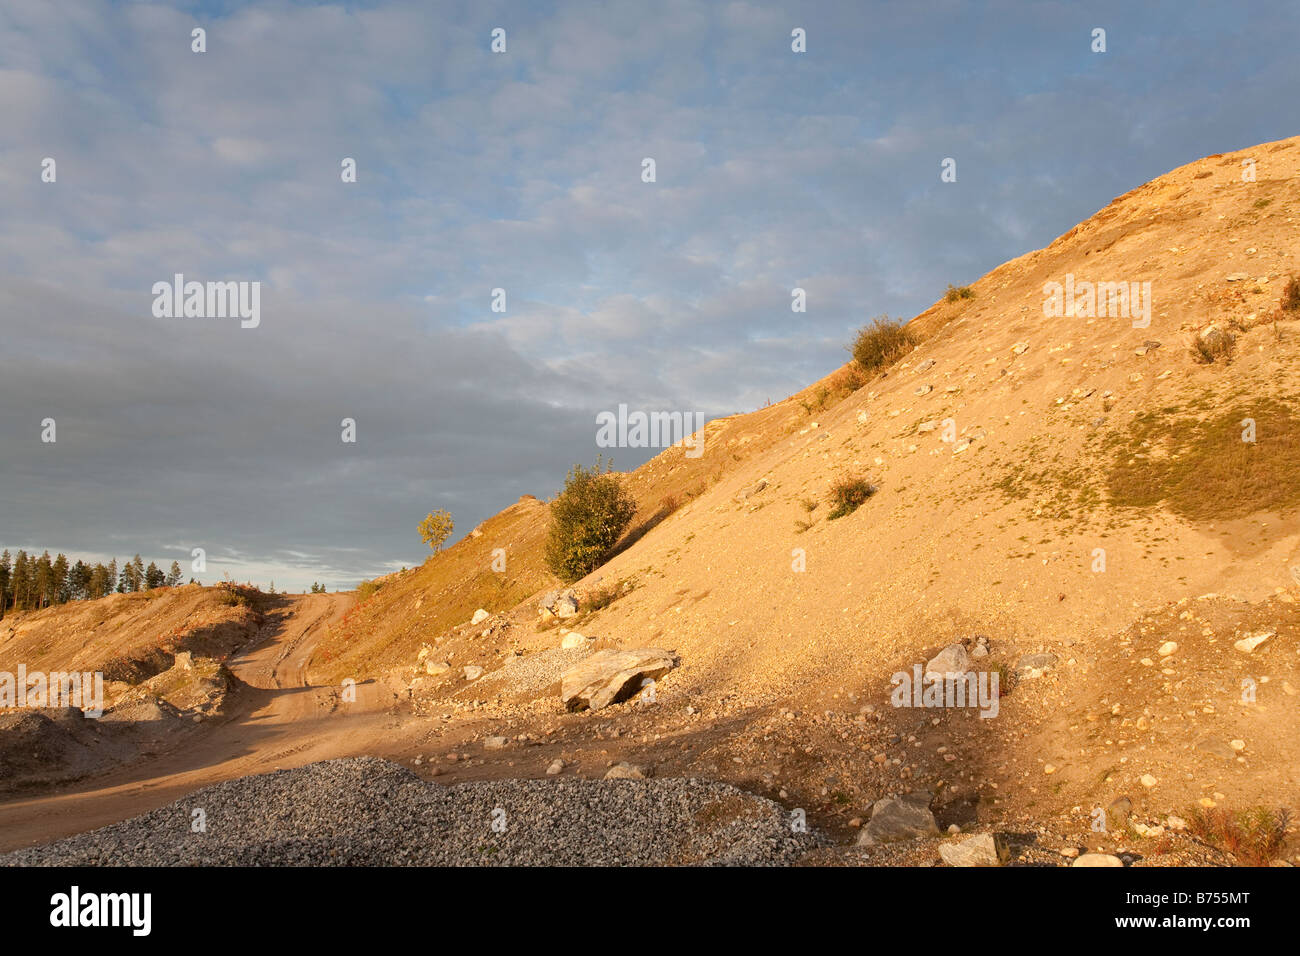 Road in a sandpit - Stock Image